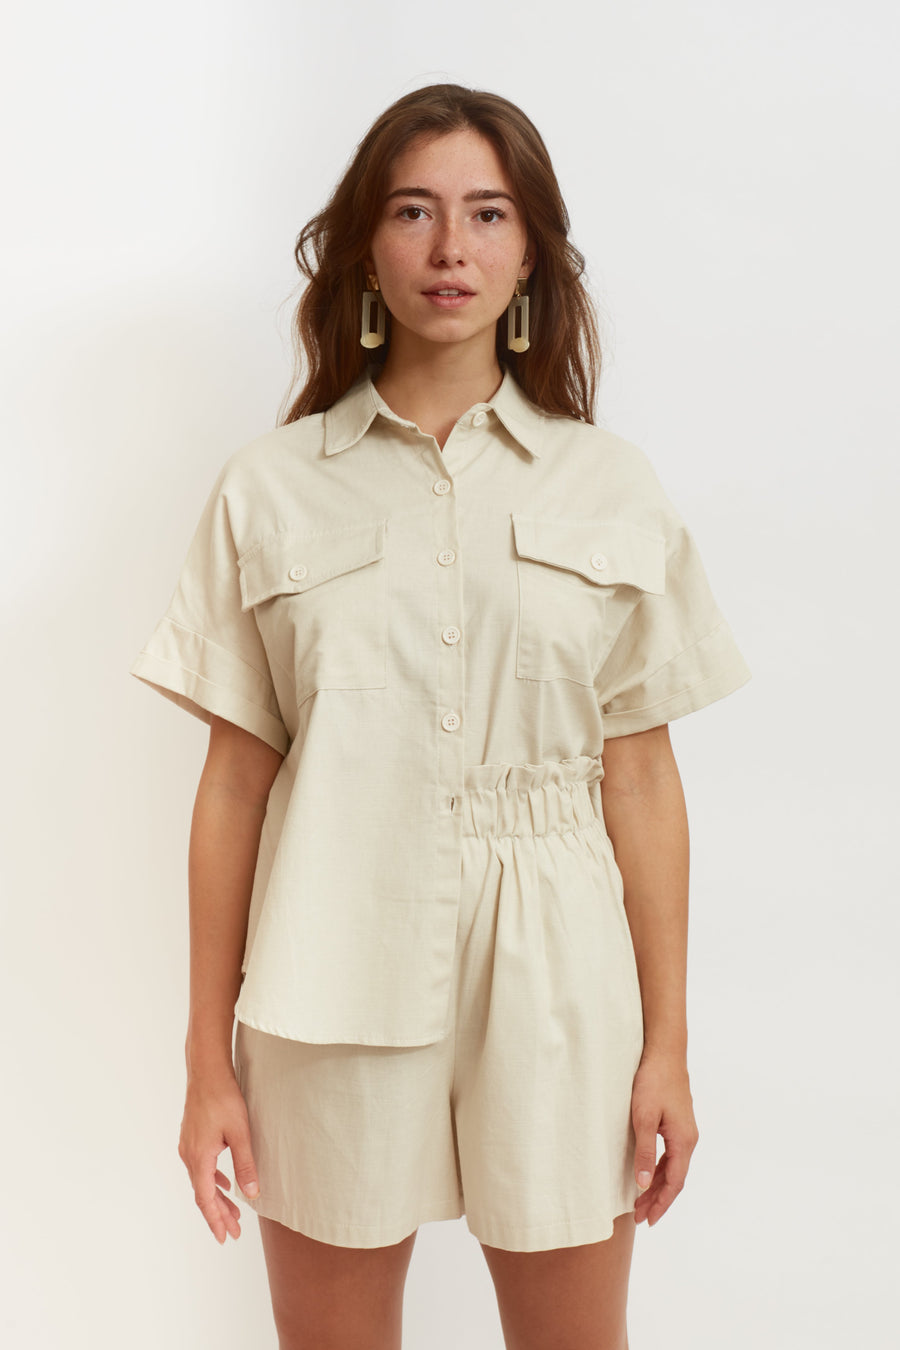 Cotton Holiday Shirt (cream)